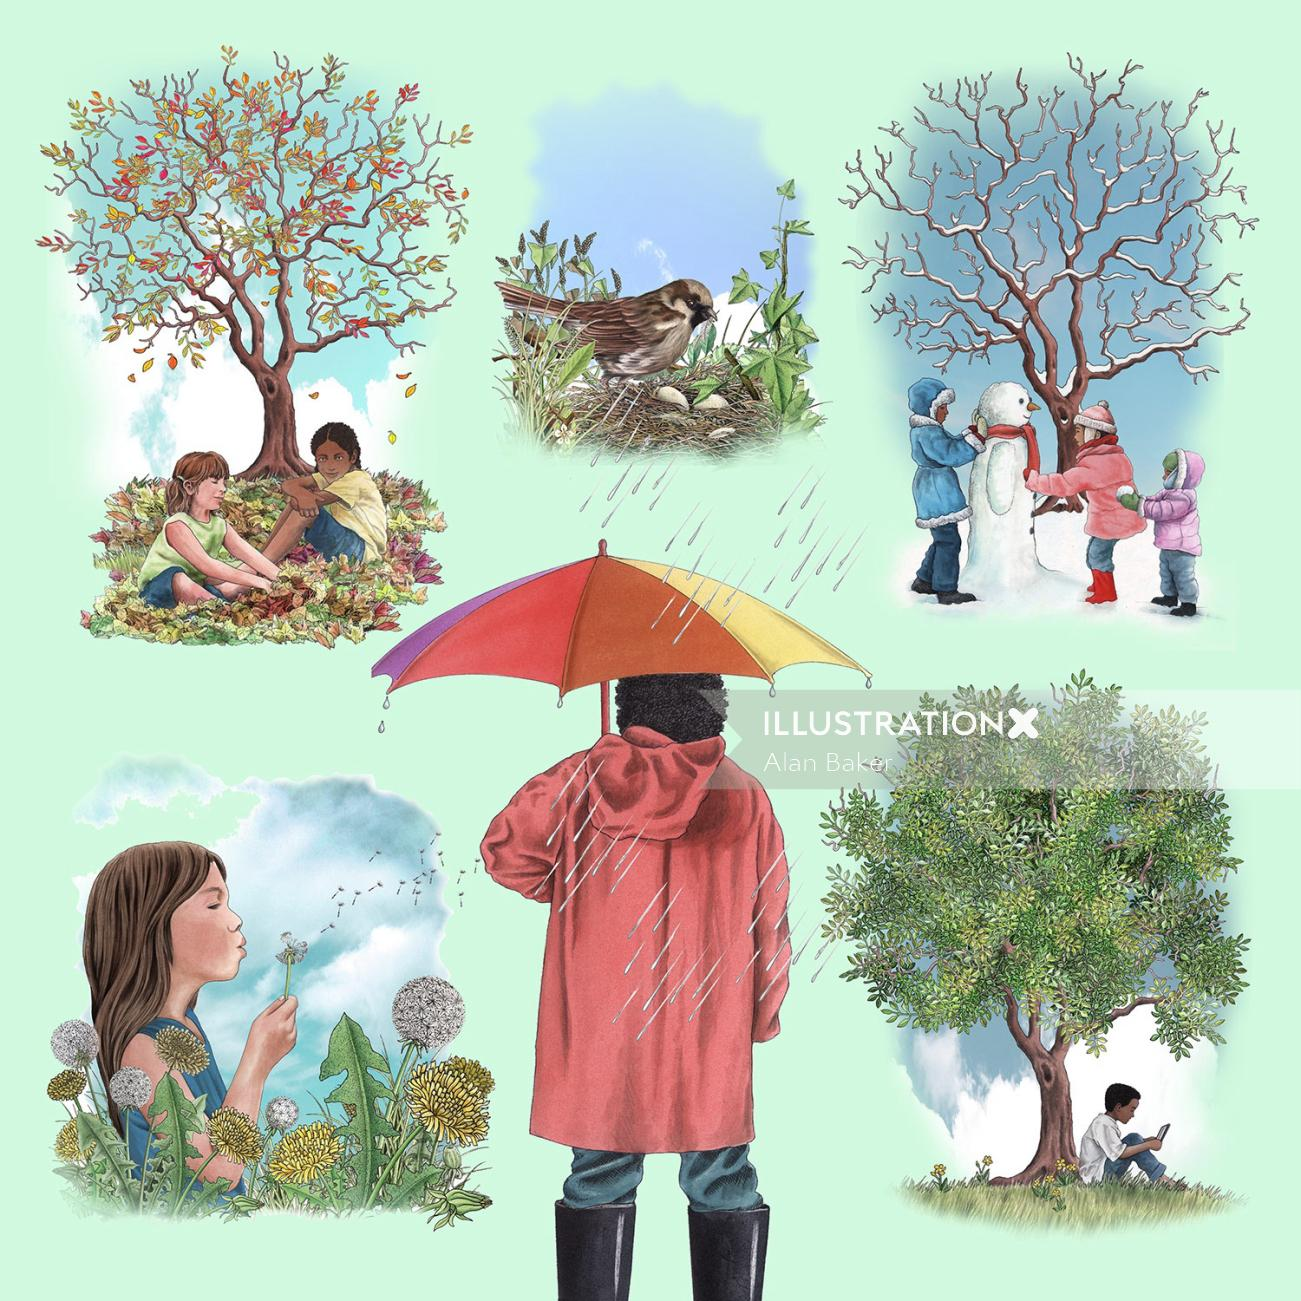 Four seasons illustration by Alan Baker